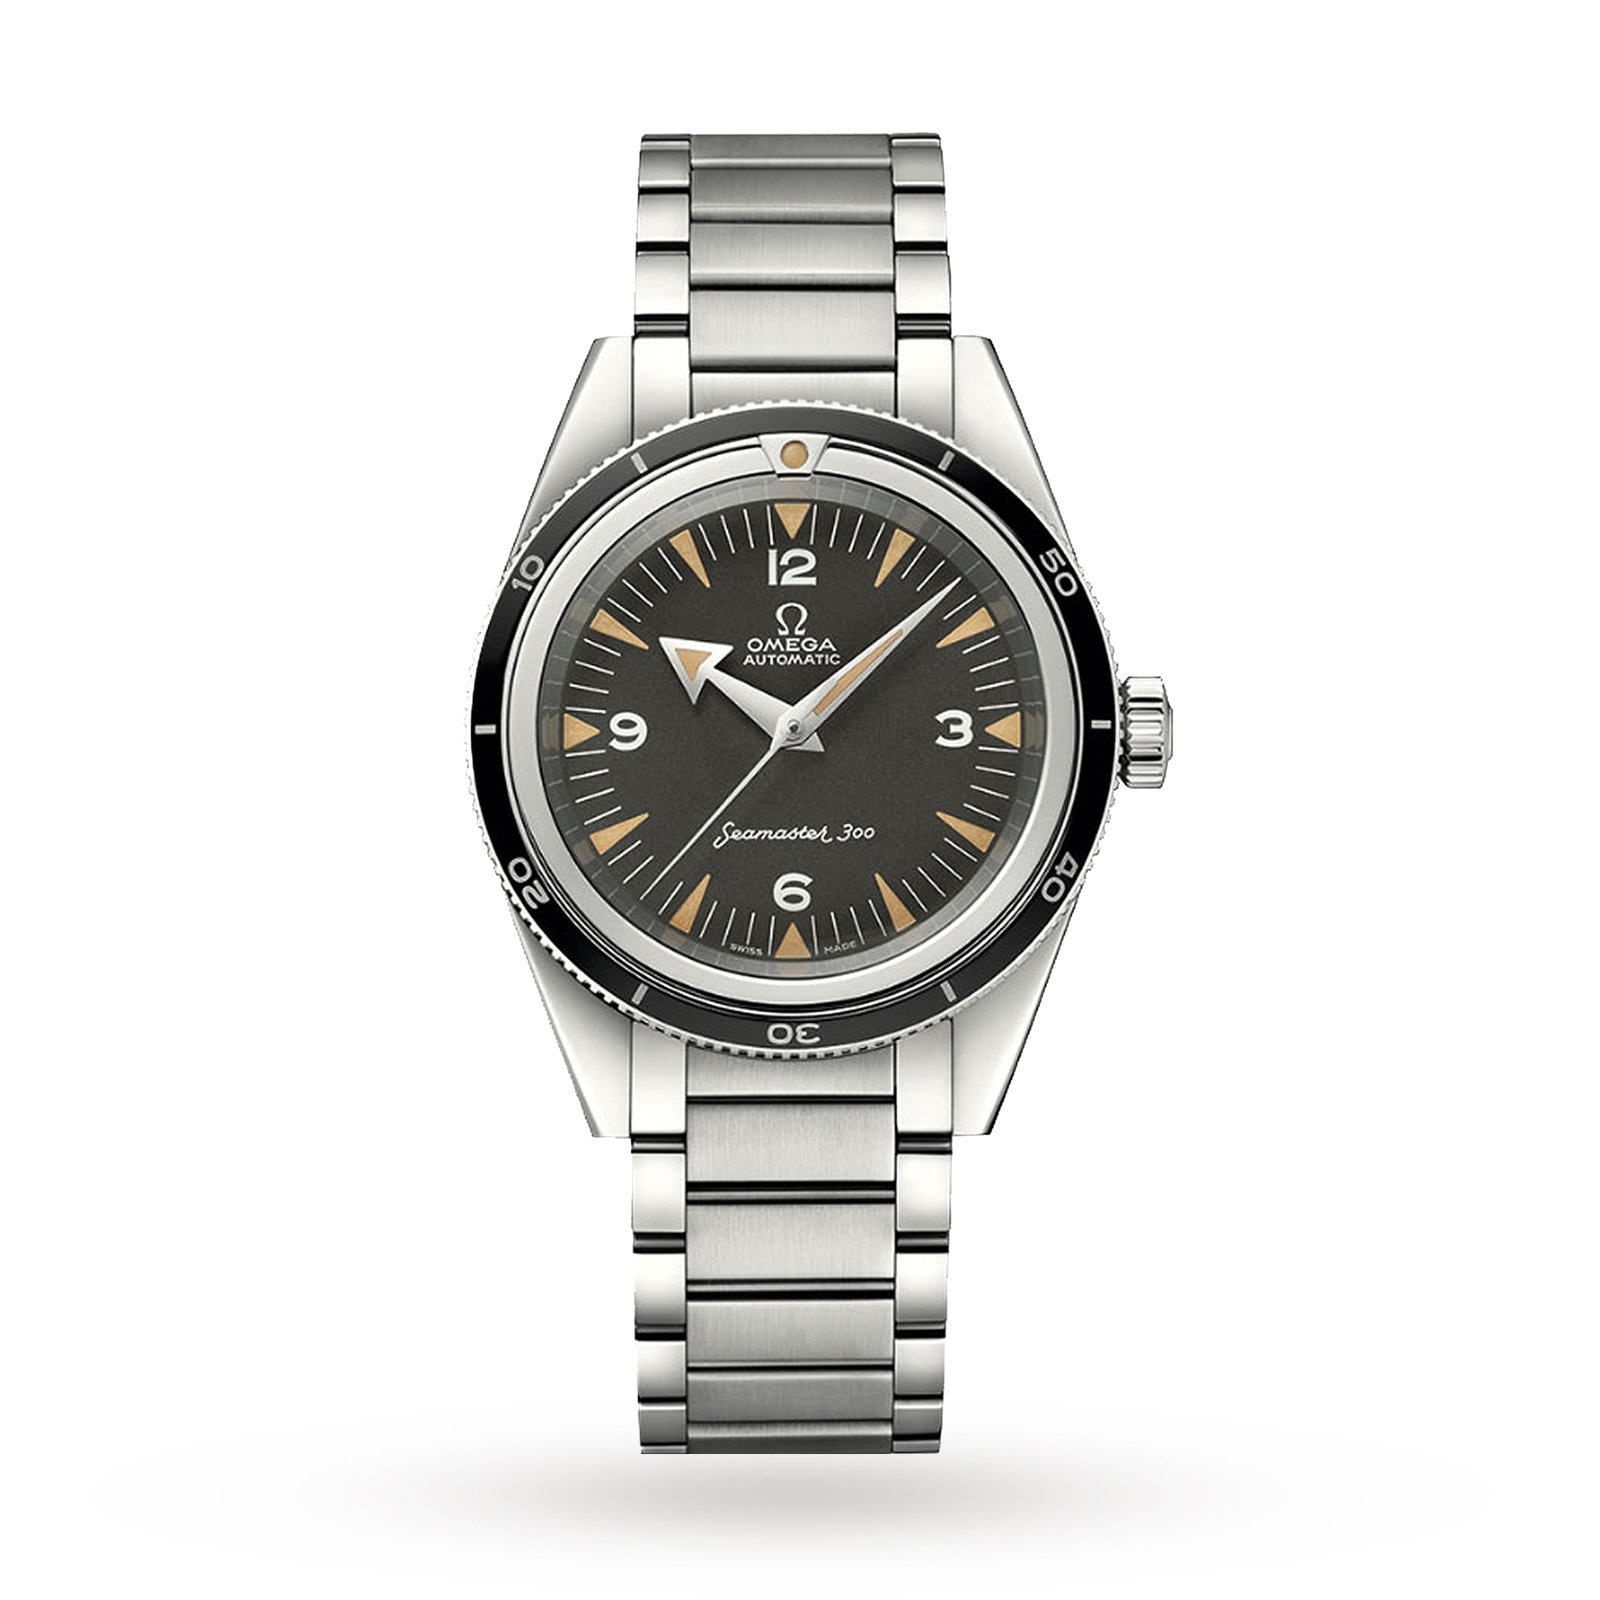 Omega 1957 Seamaster 300 Limited Edition Mens Watch